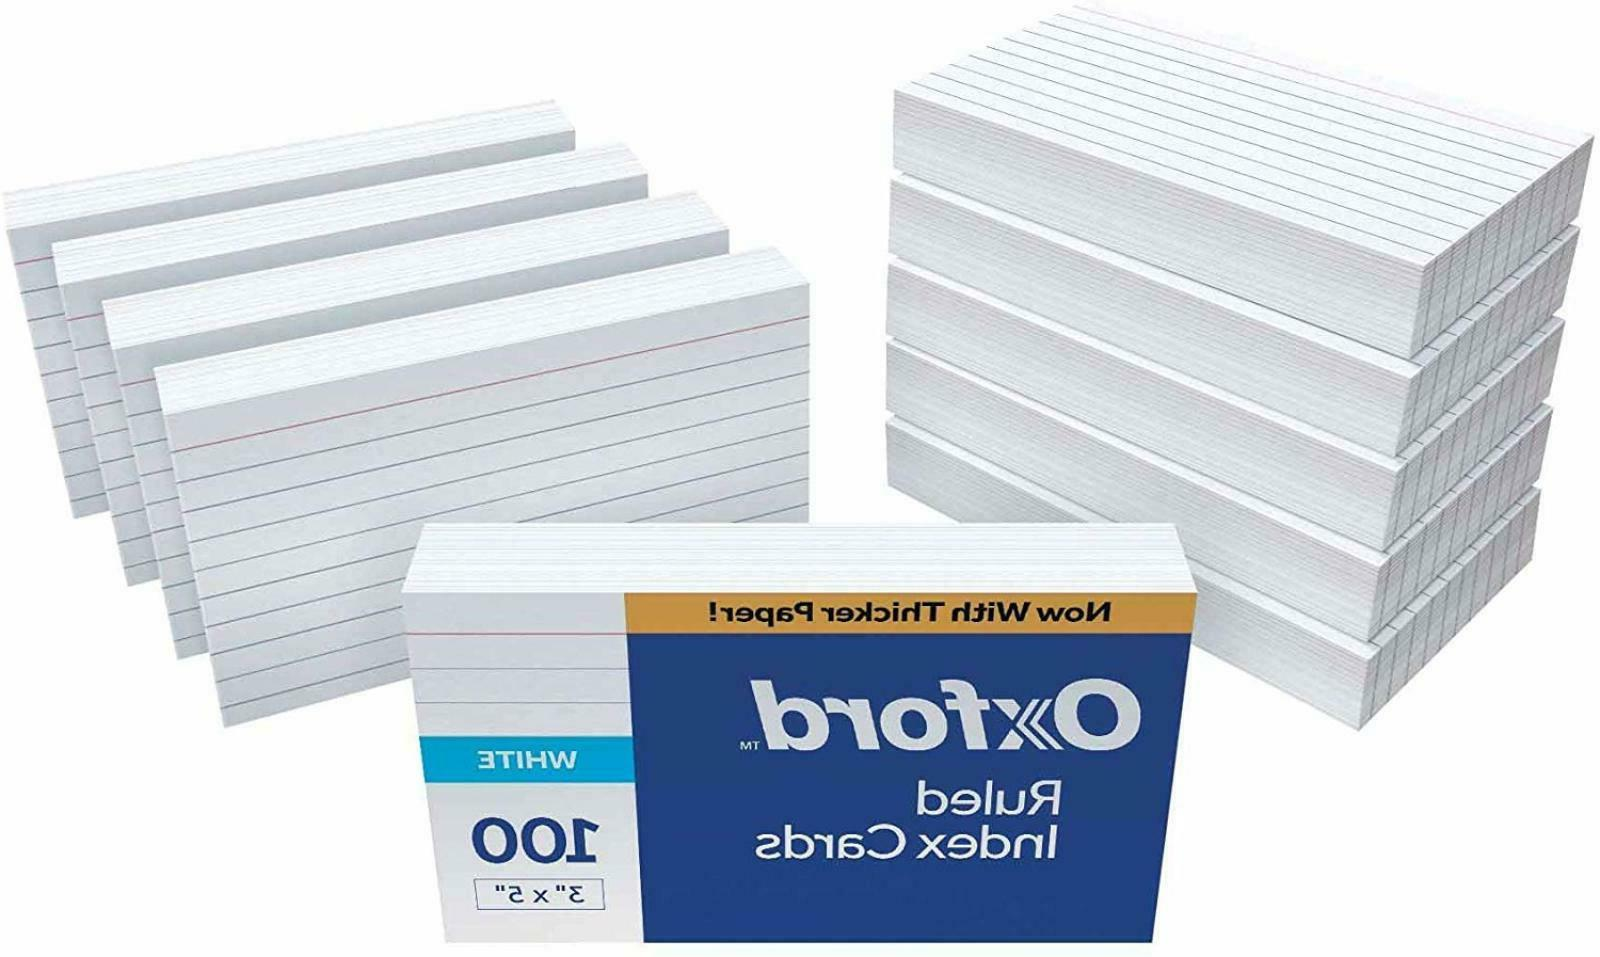 "Oxford Ruled Index Cards 3"" x 5"" White 1,000 Cards 10 Packs"